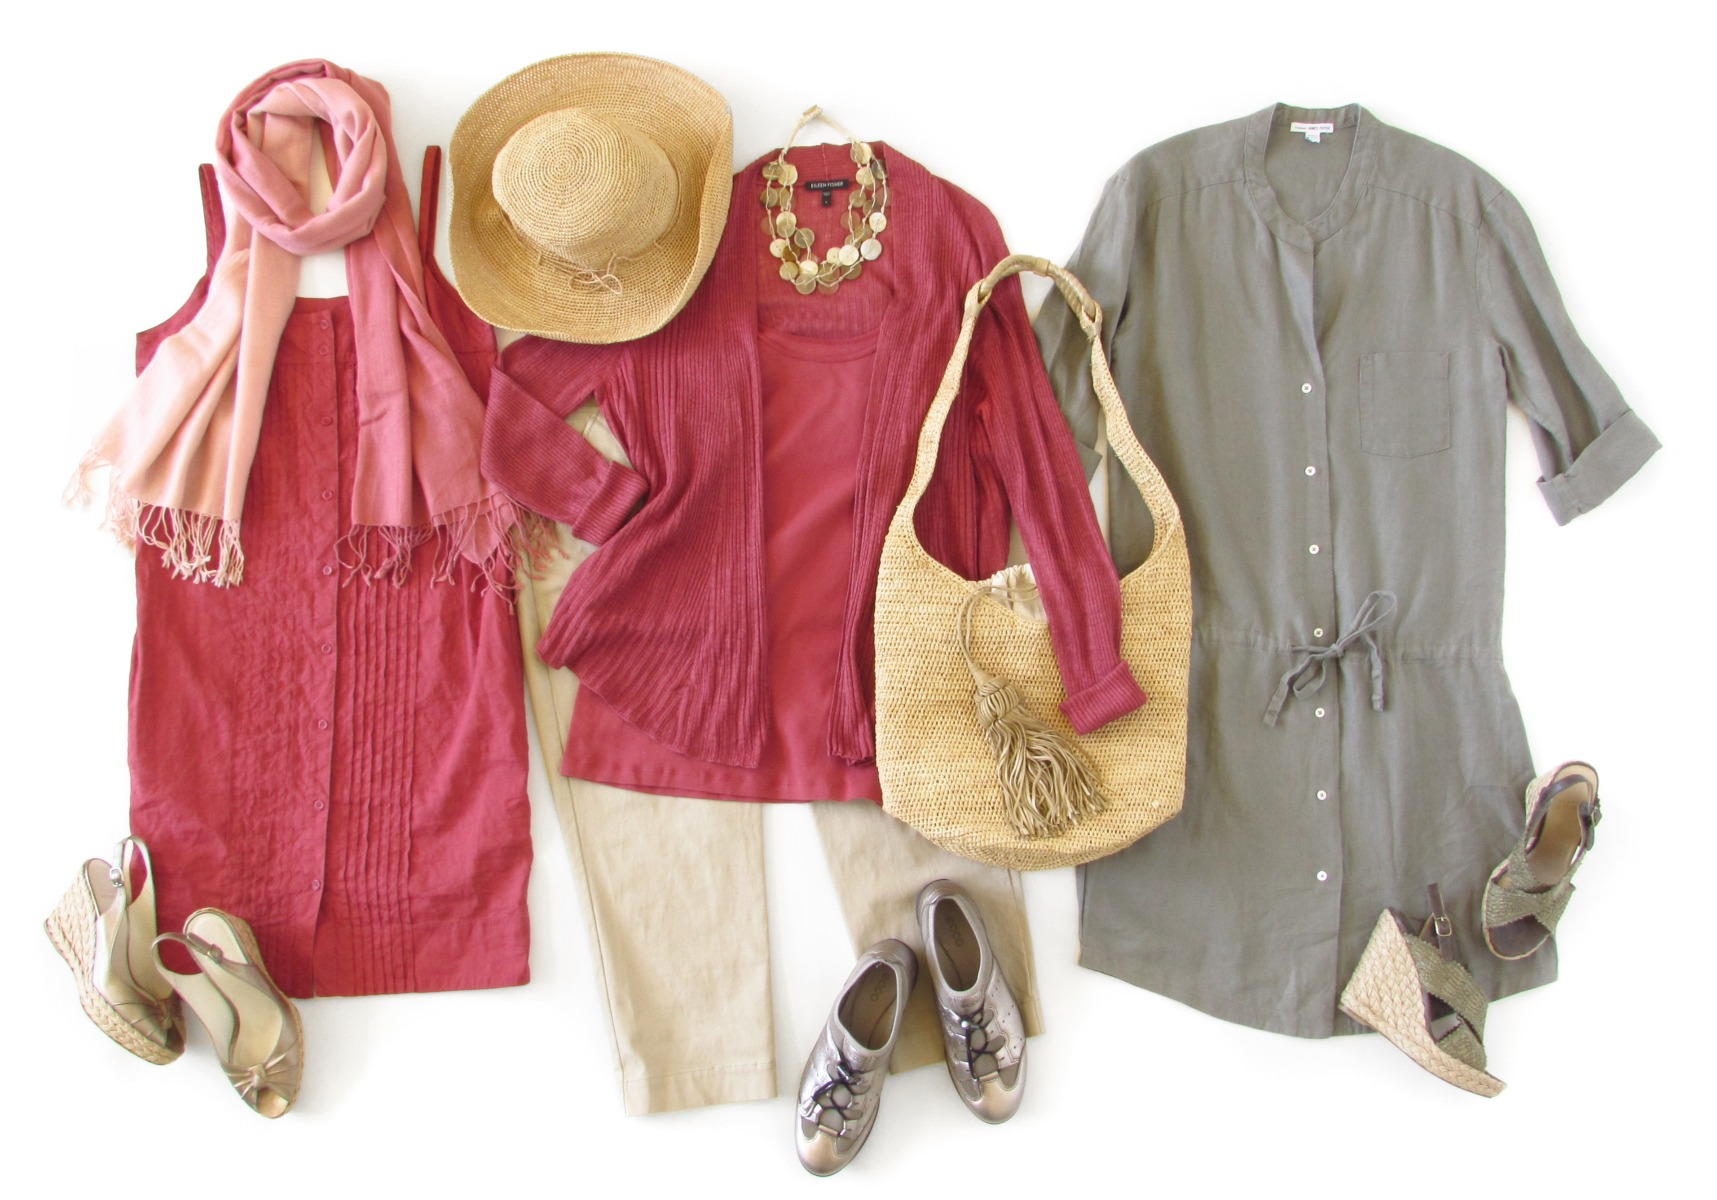 Spring / Summer Weekend Getaway Capsule Wardrobe